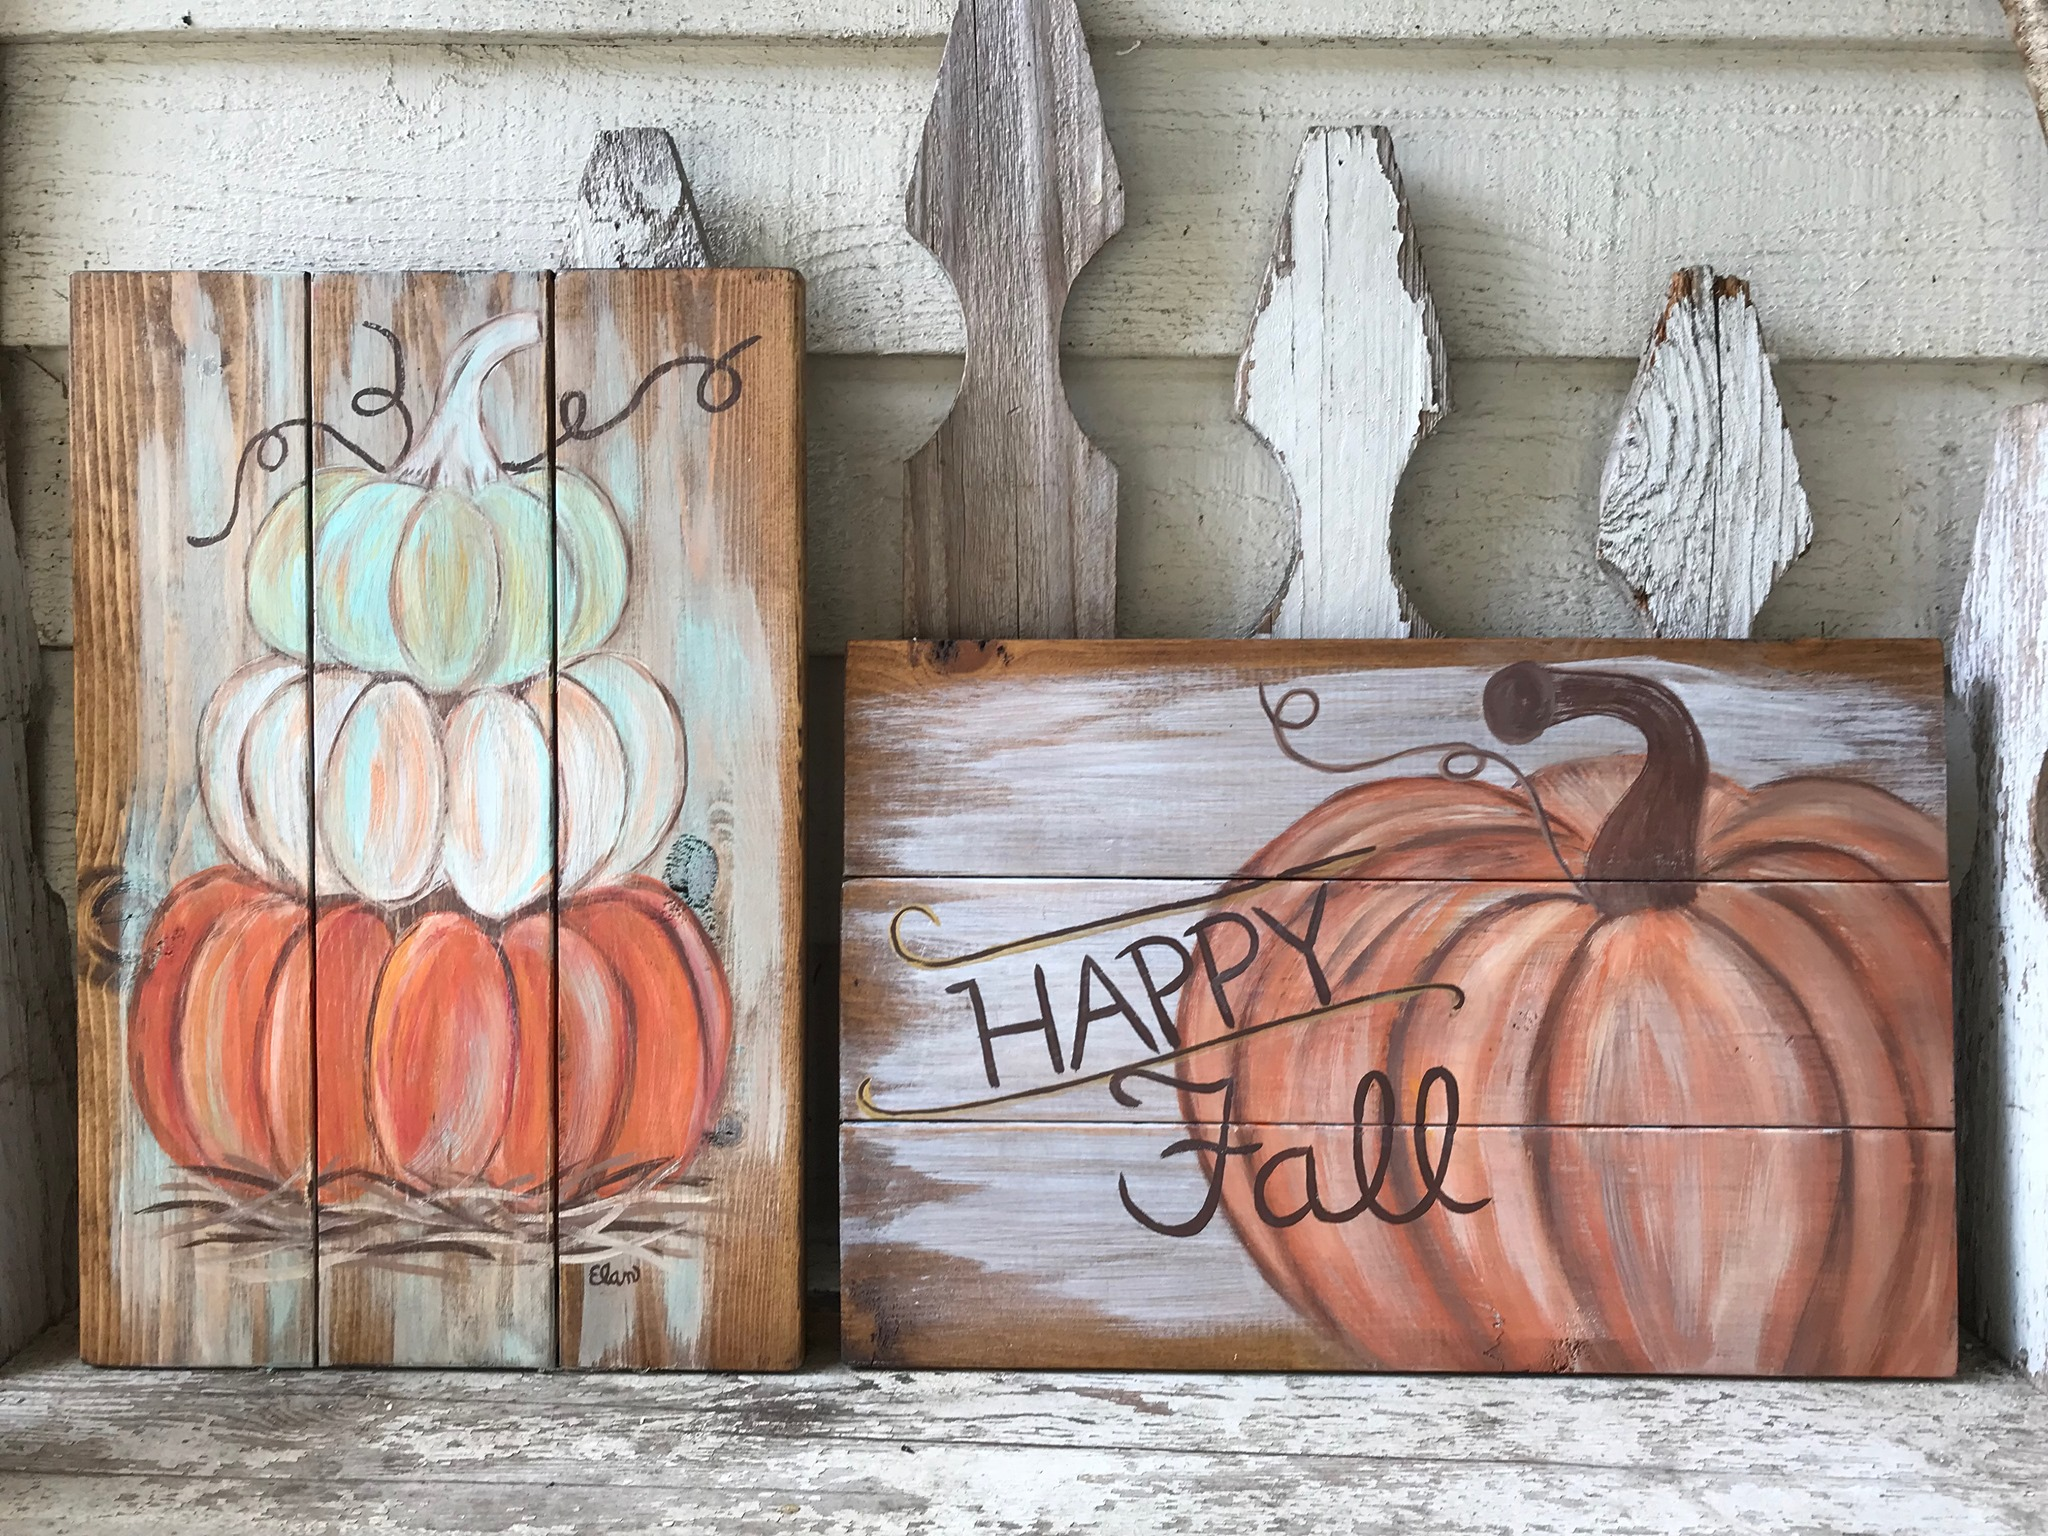 Paint and Sip night with Always BeArtiful on Friday October 4th from 6-8:30pm at our Woodinville Tasting Room